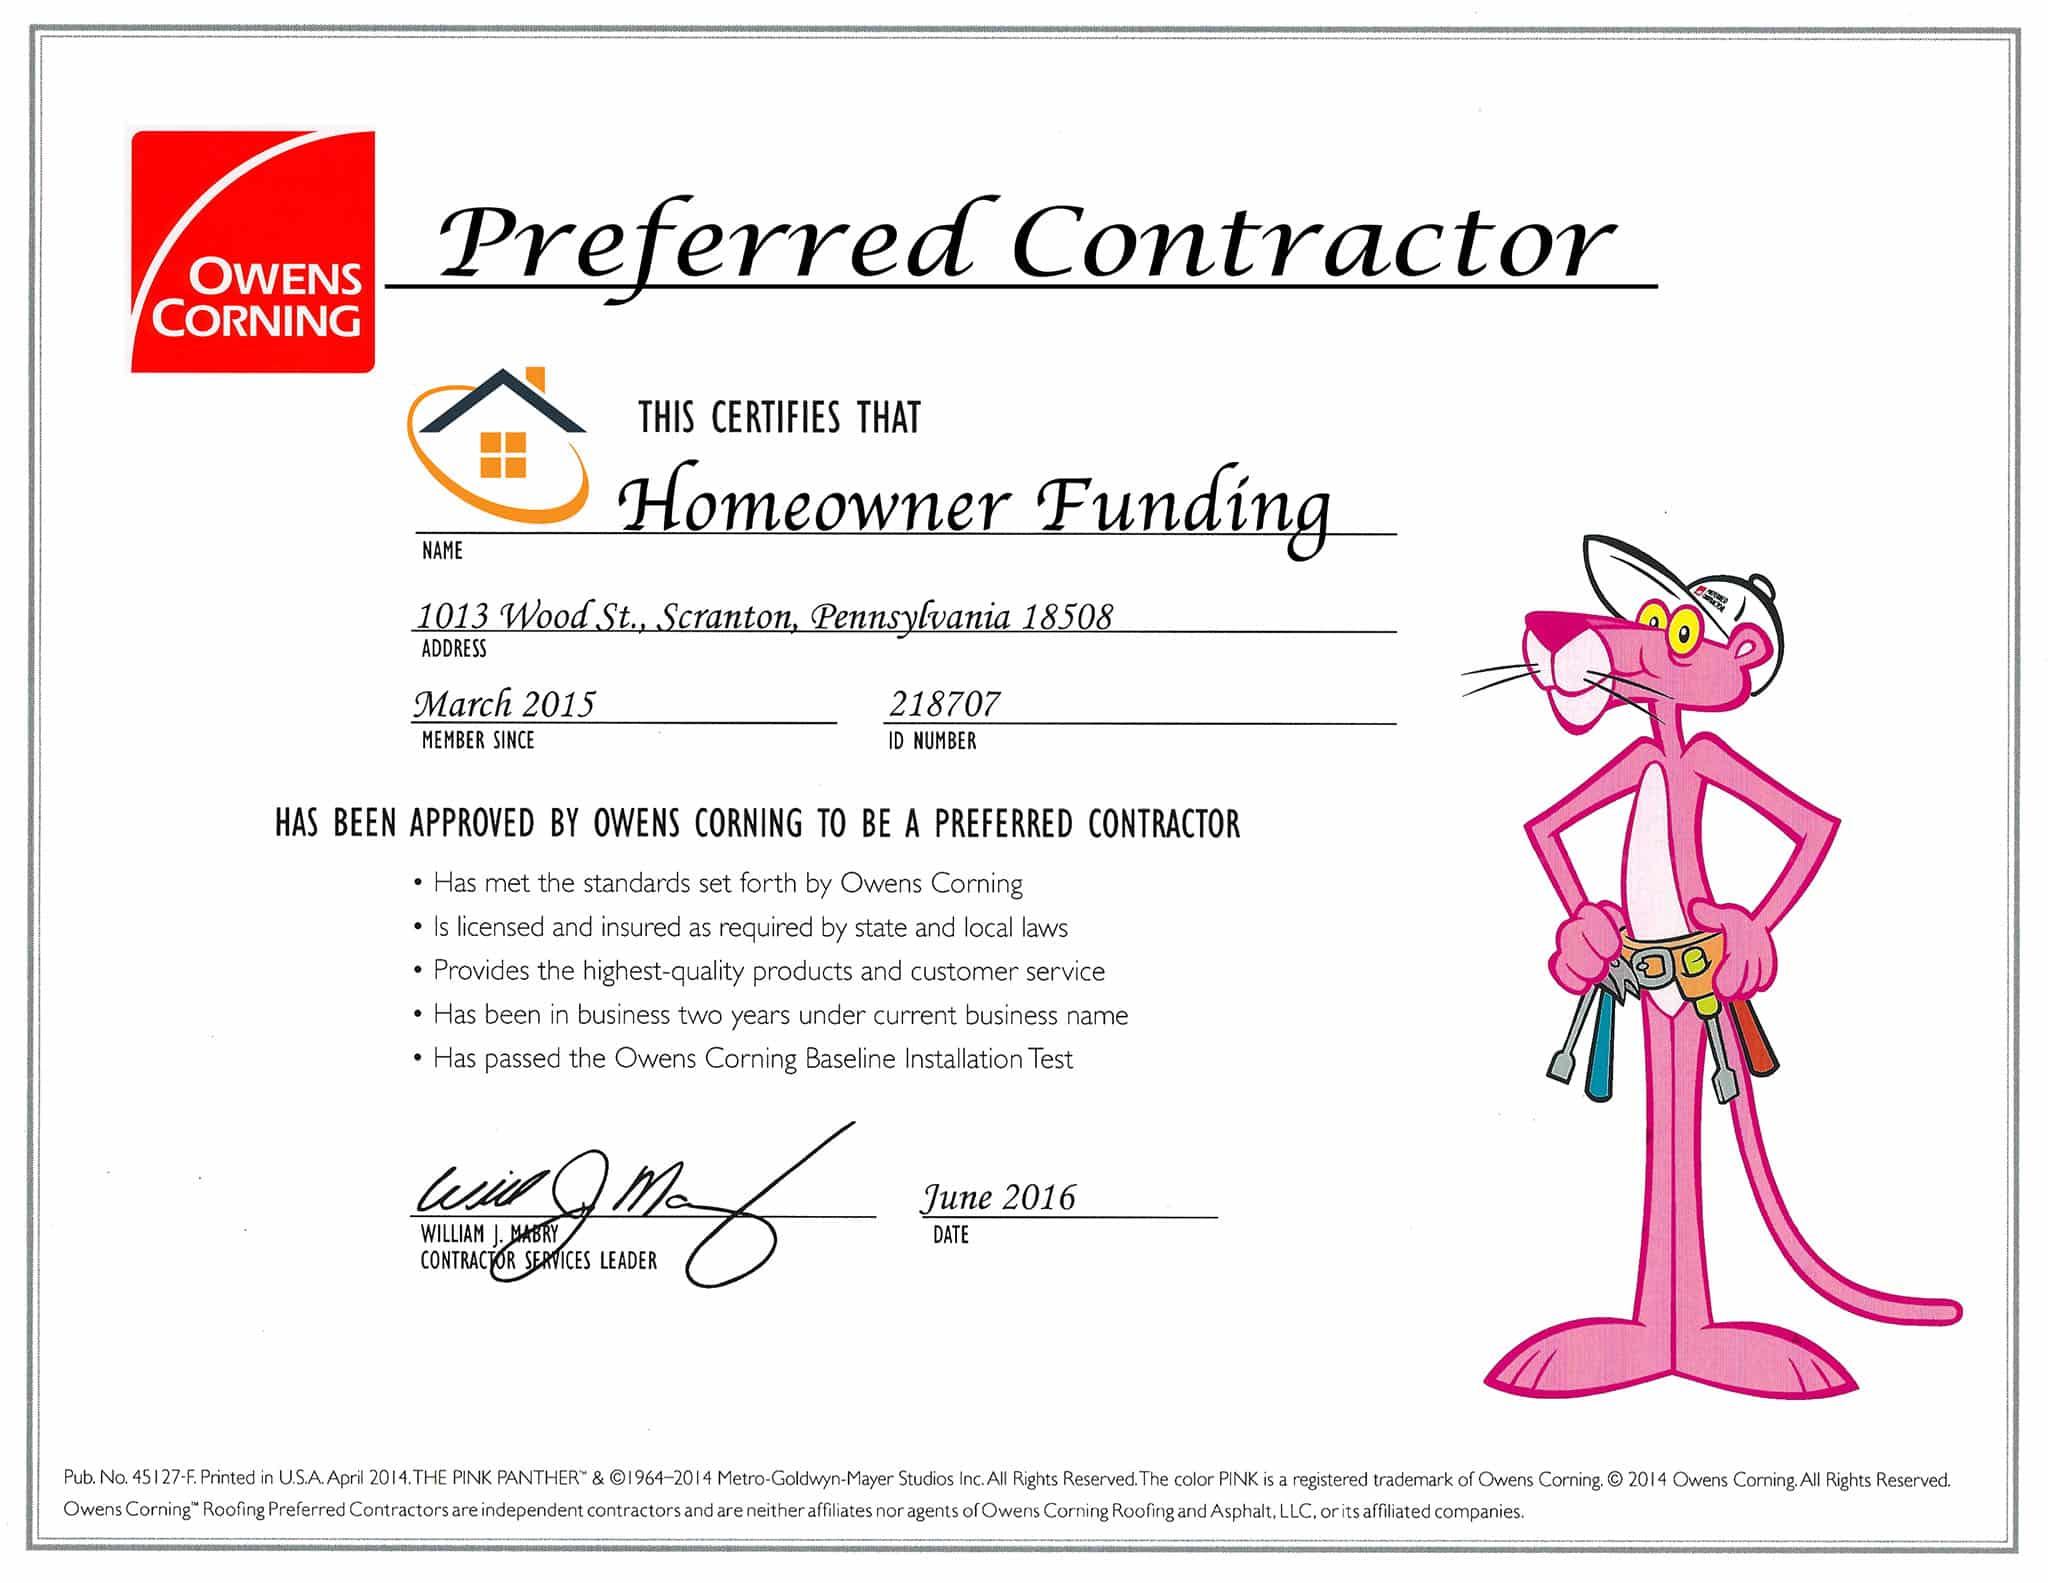 Preferred_Contractor_Owens_Corning_Certificate_web